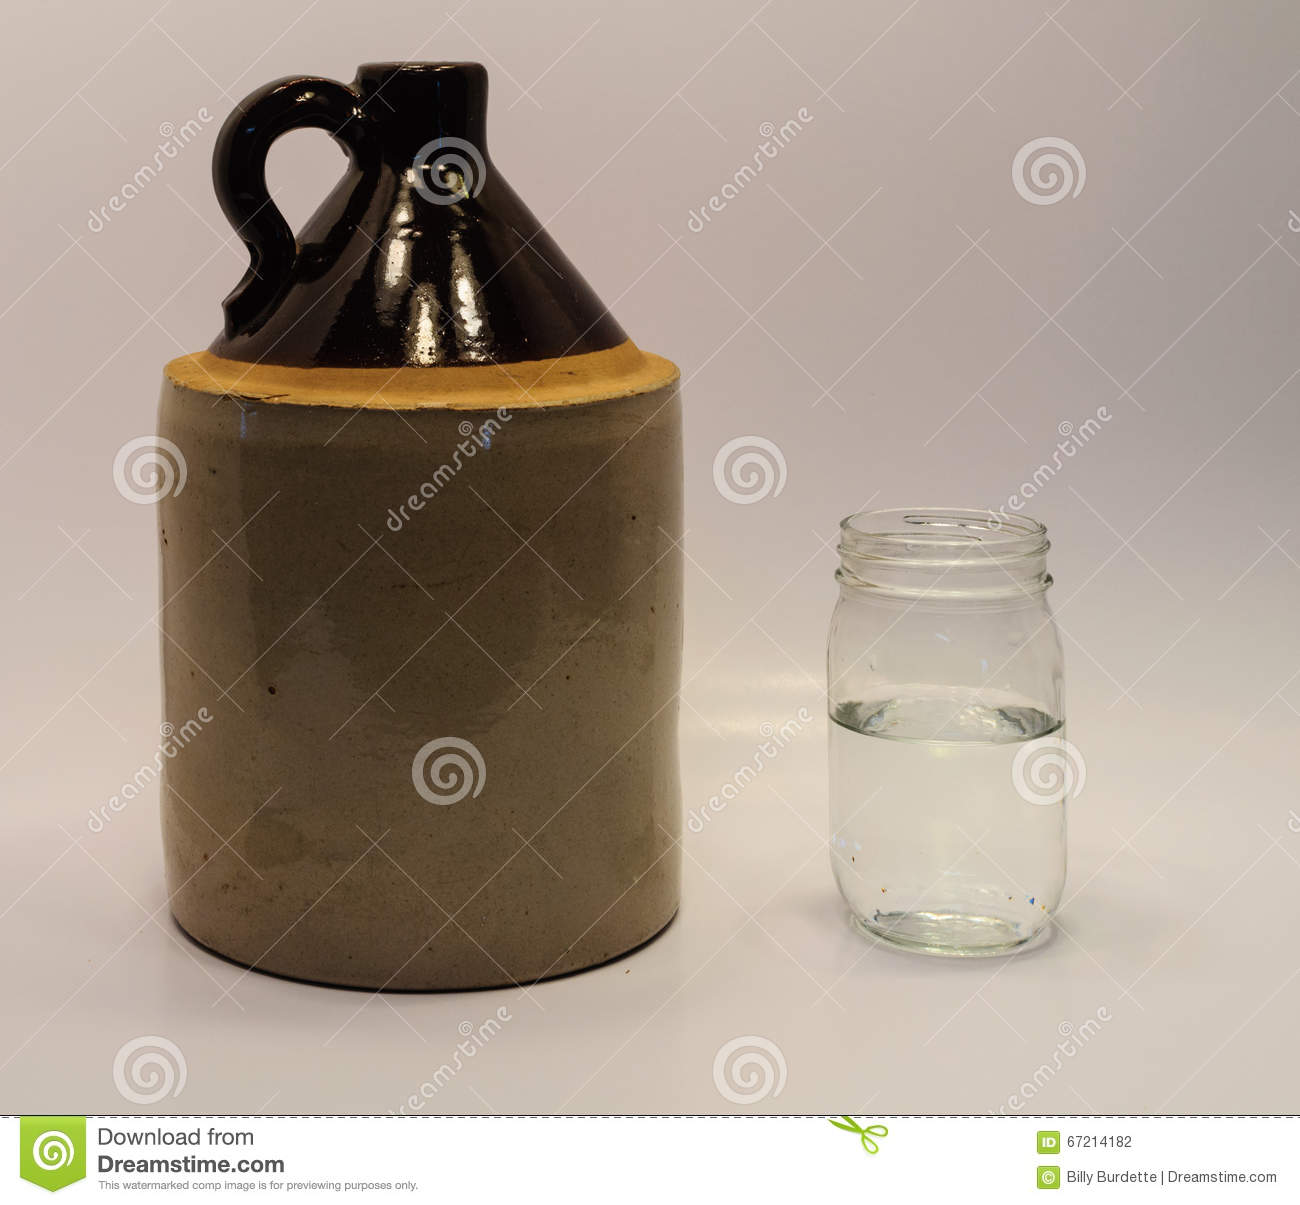 Moonshine Jug And Mason Jar Stock Photo - Image: 67214182